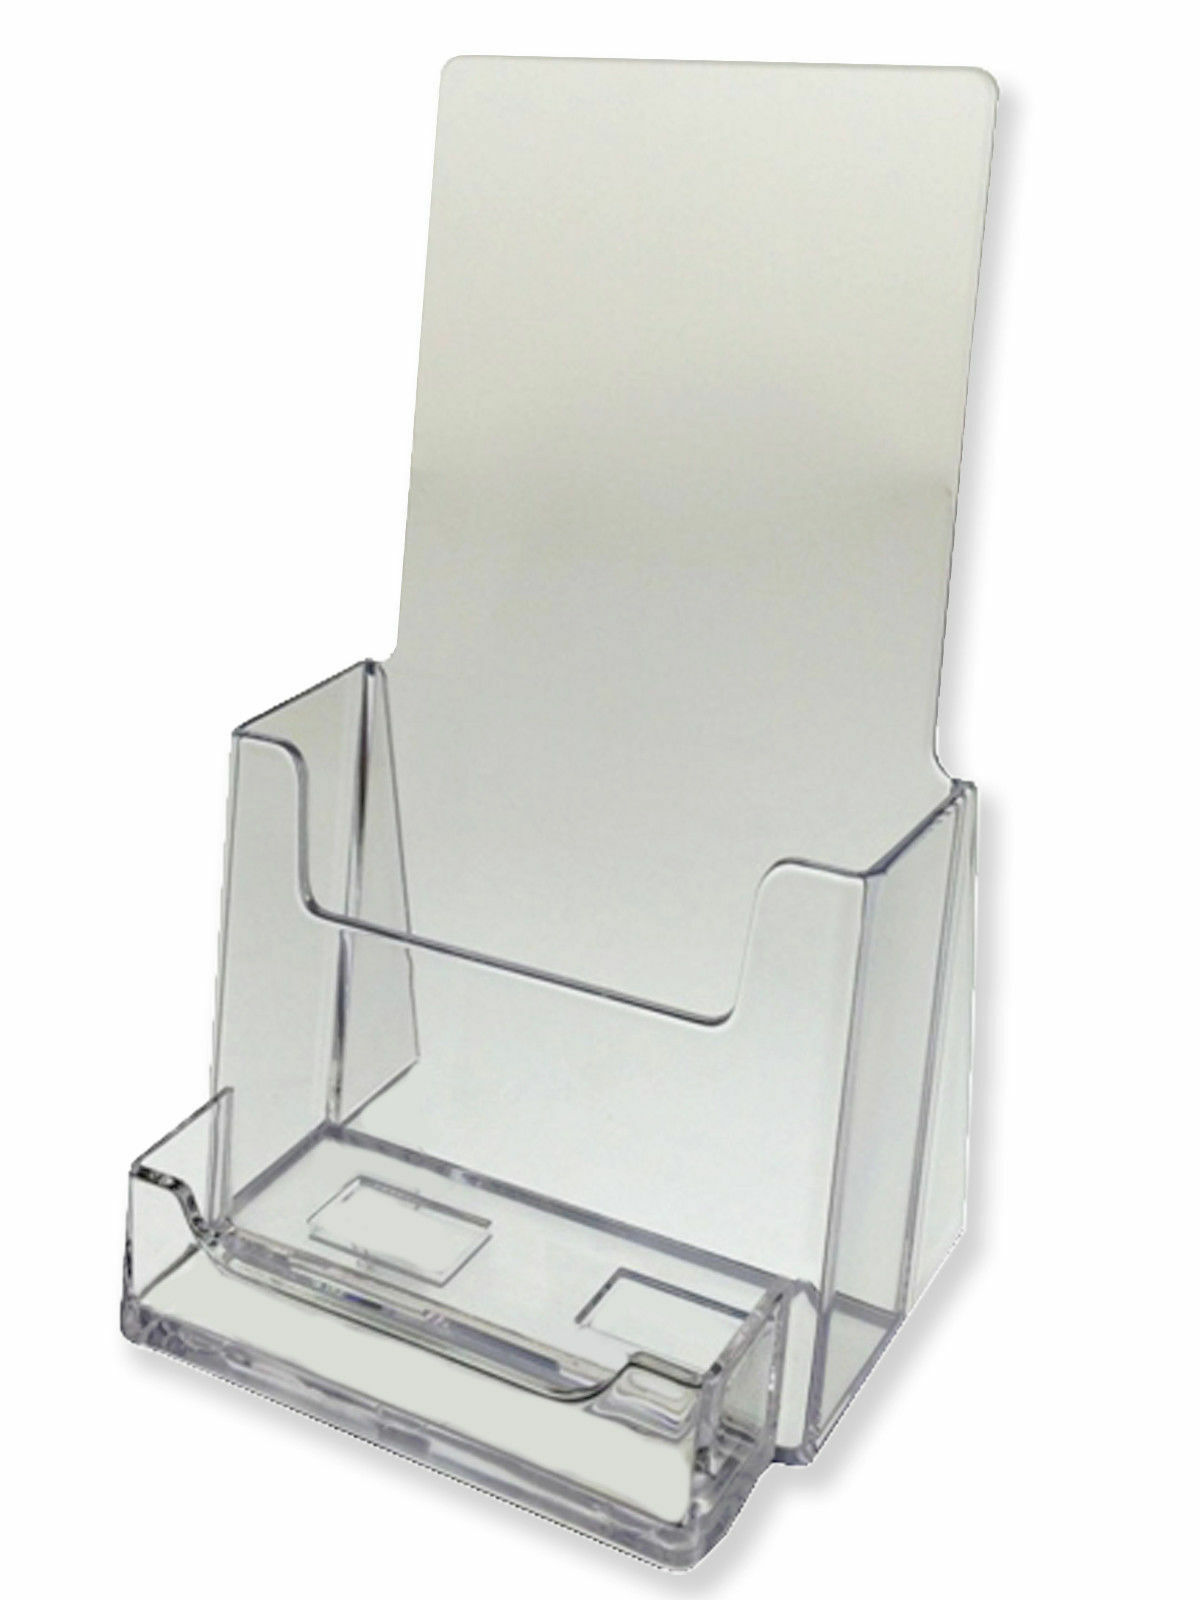 2 pack clear tri fold brochure holder with business card azm 2 pack clear tri fold brochure holder with business card azm displays on sale 1 of 1free shipping see more colourmoves